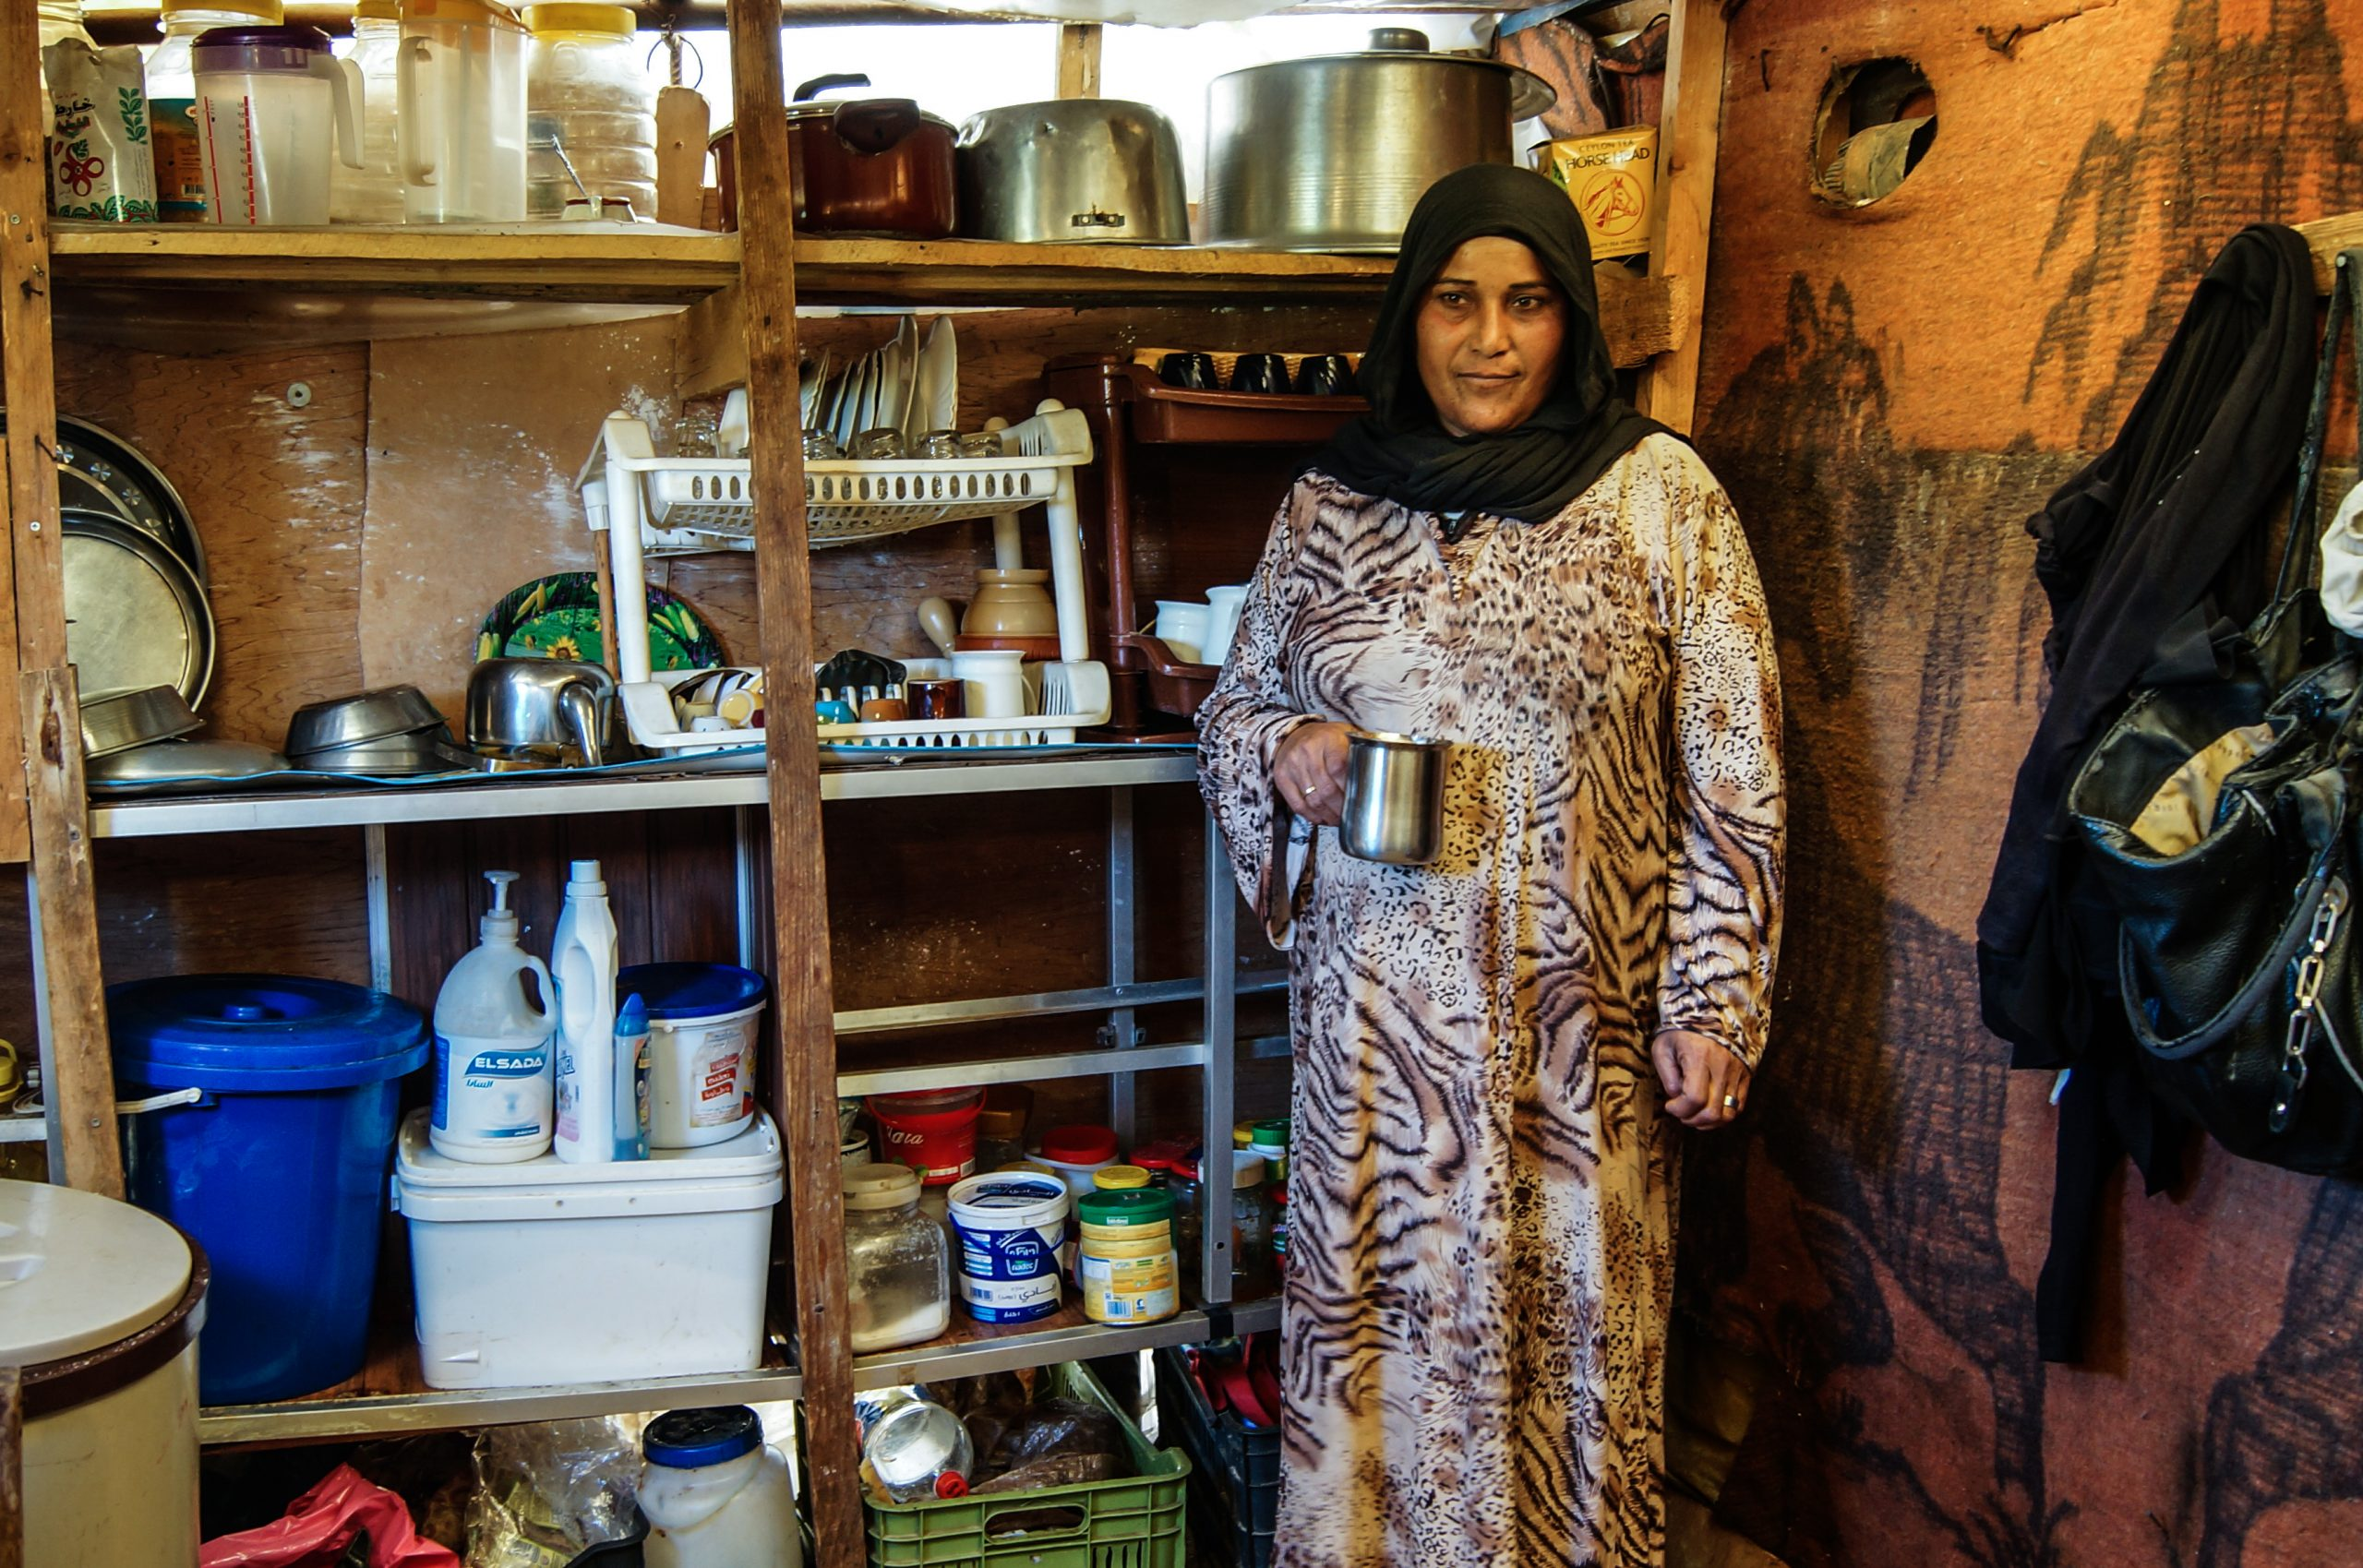 Zeinab in her small but very tidy and well organised kitchen